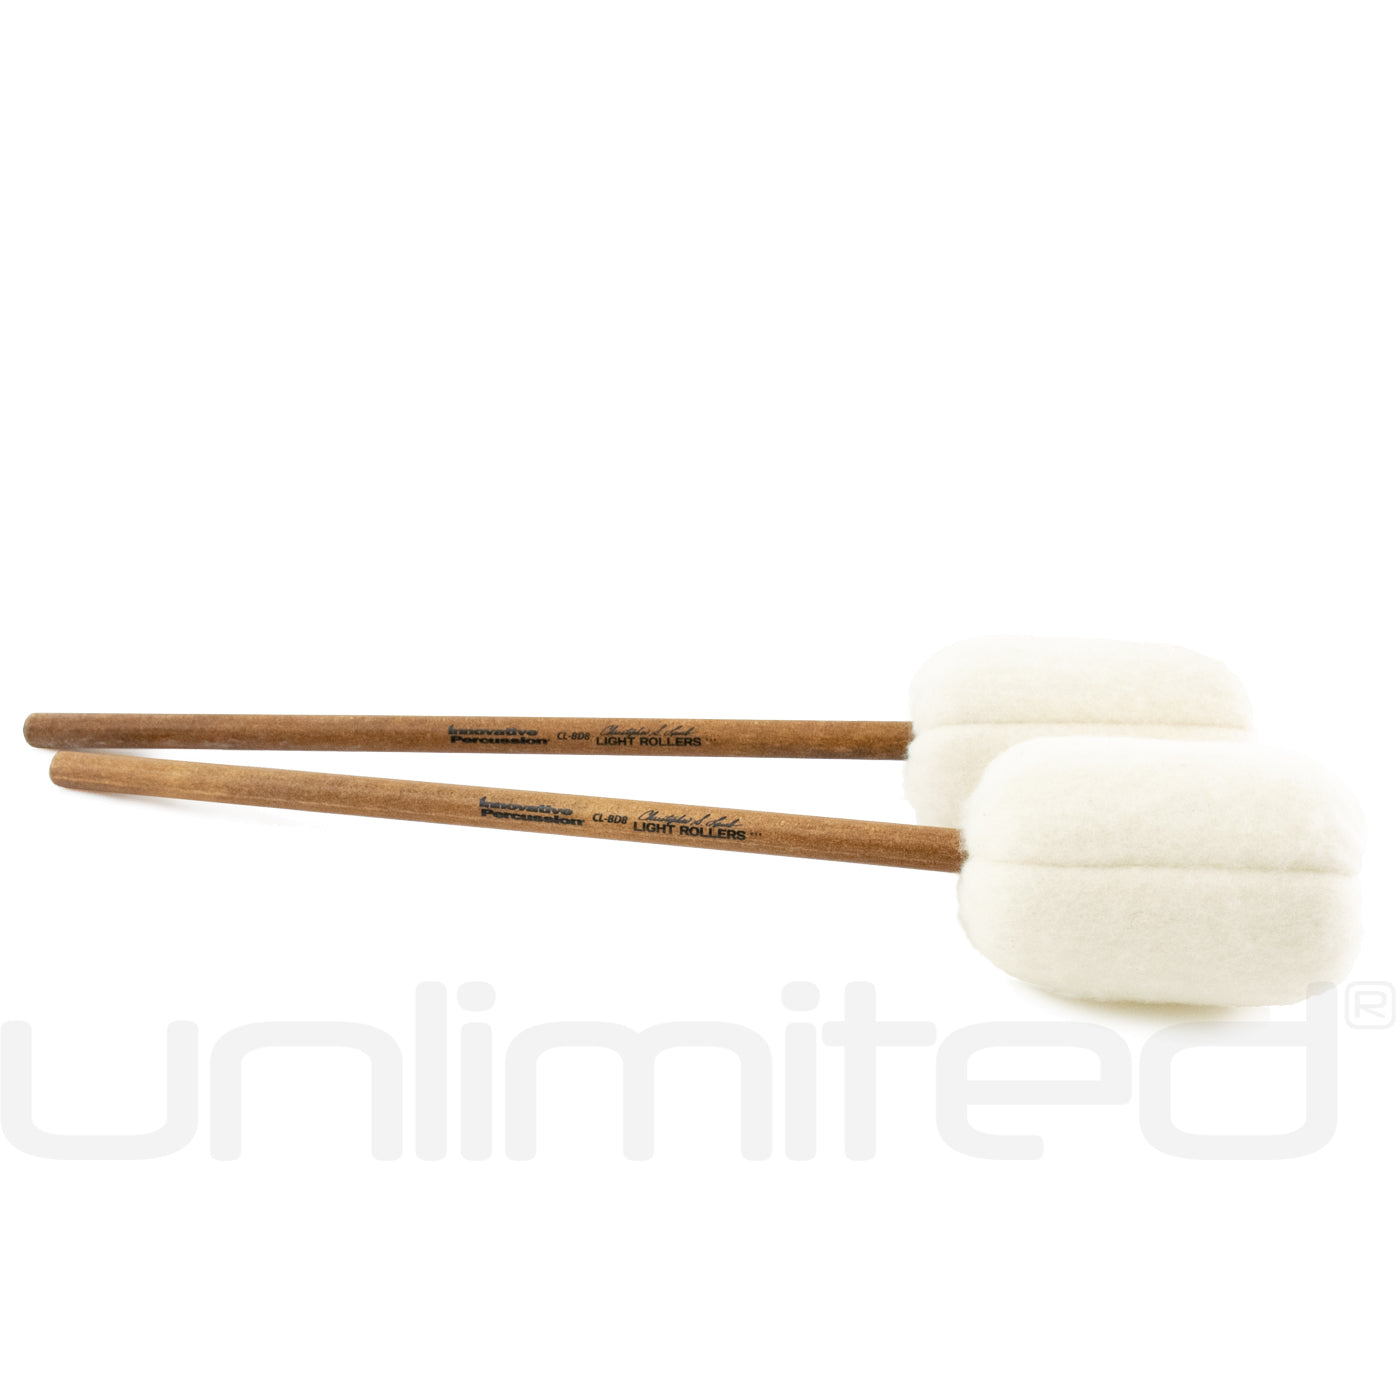 CLBD8 Pair Concert Bass Drum Innovative Percussion Christopher Lamb Series Light Rollers